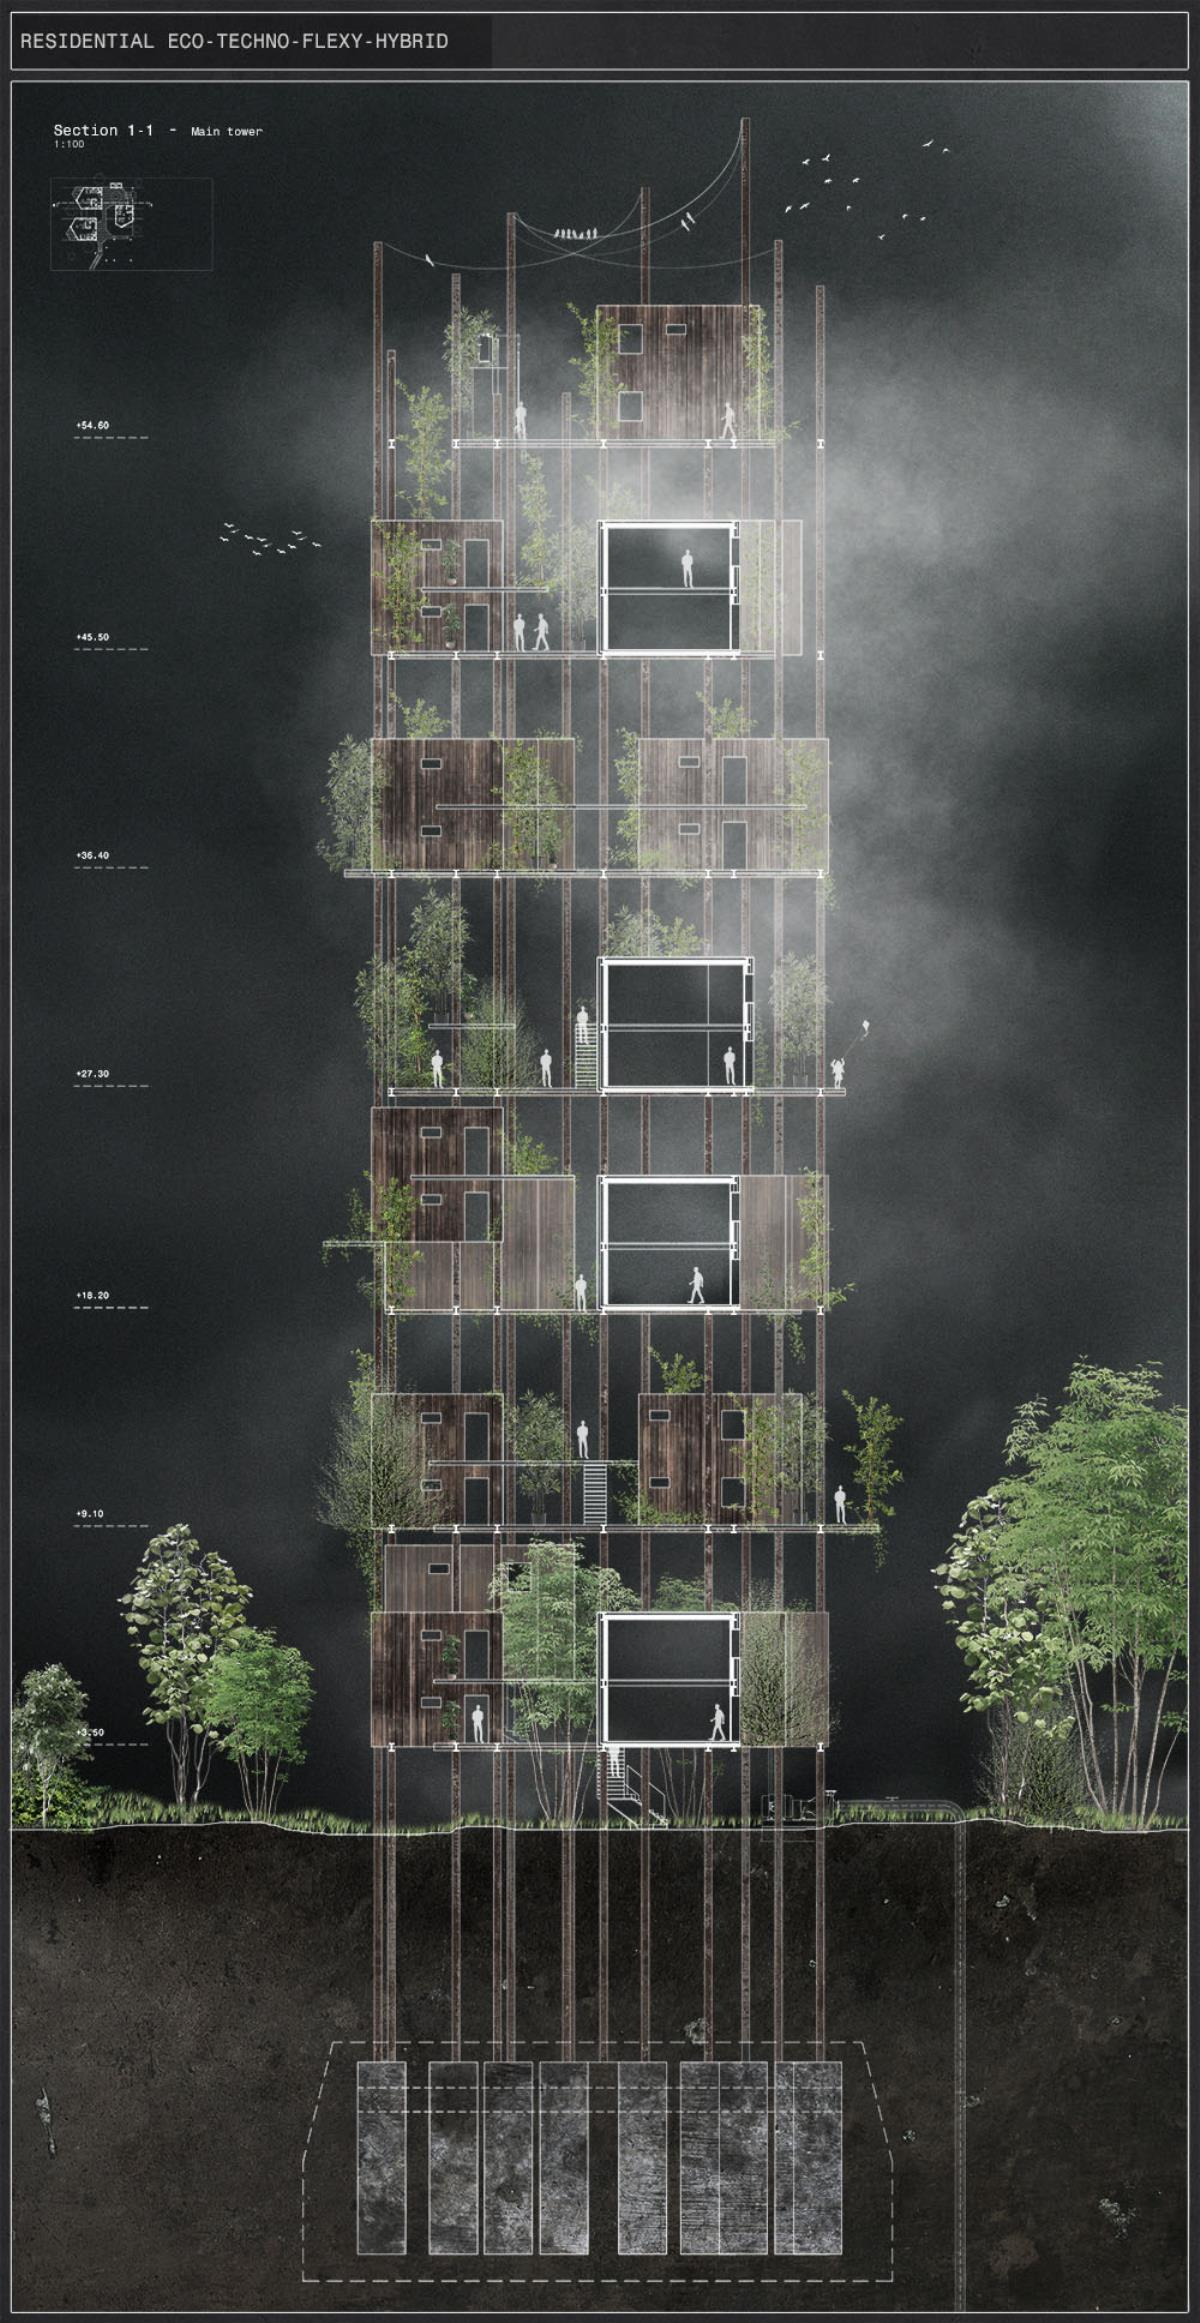 Presidents medals residential eco techno flexy hybrid for Architecture hybride